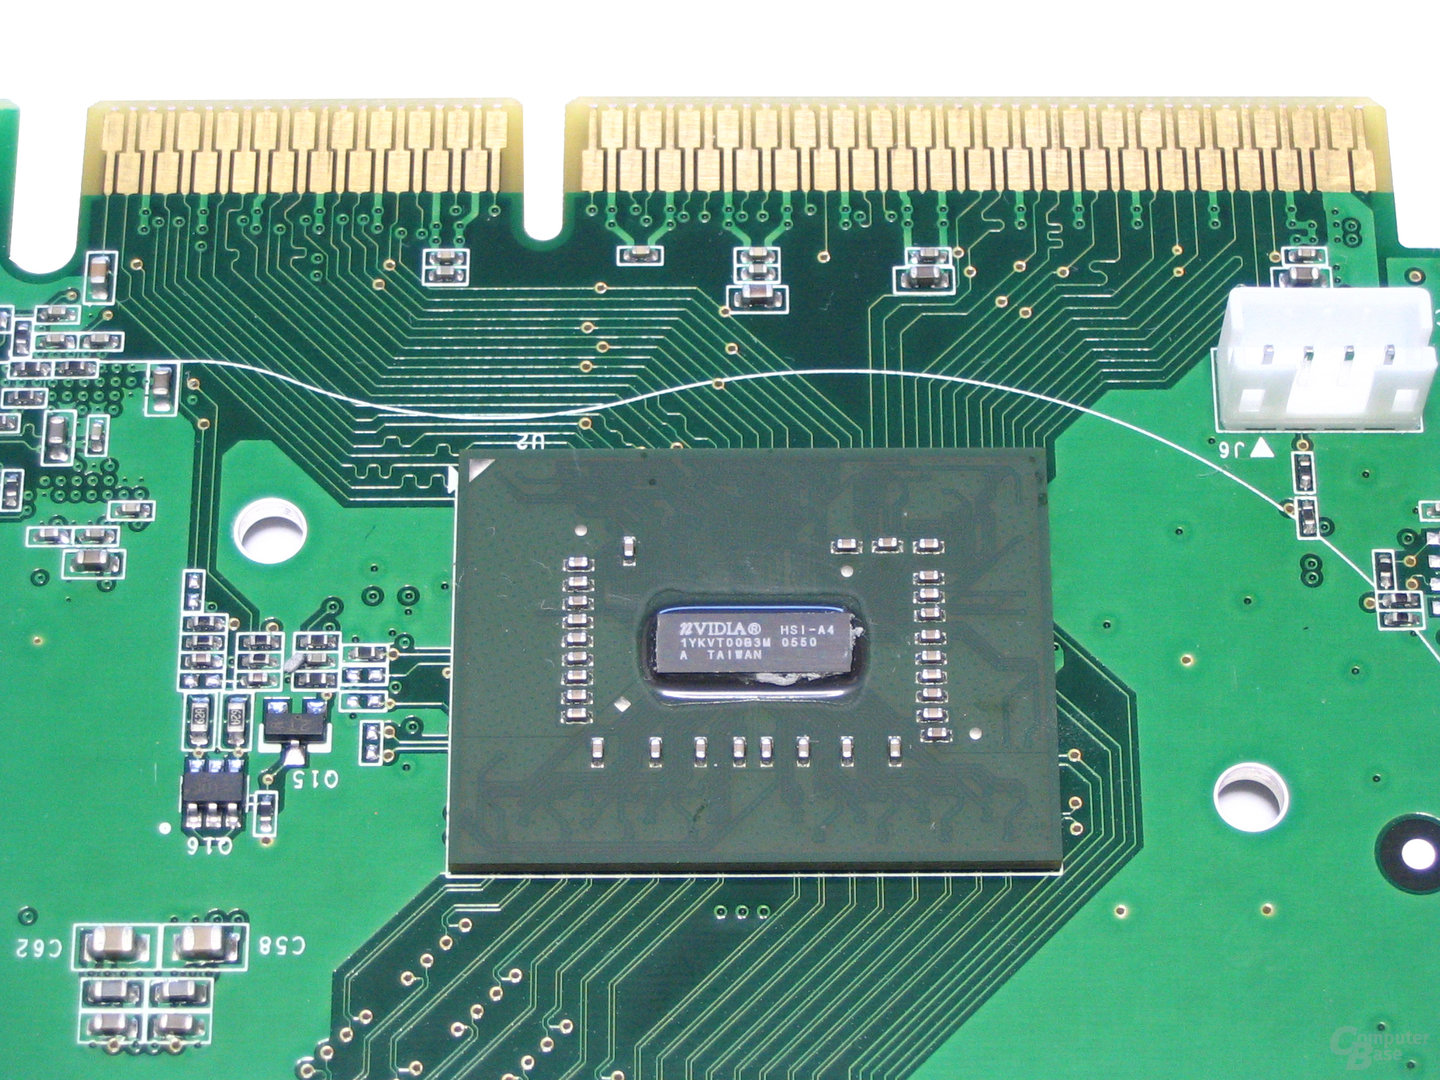 HSI-Bridge POV GeForce 7800 GS